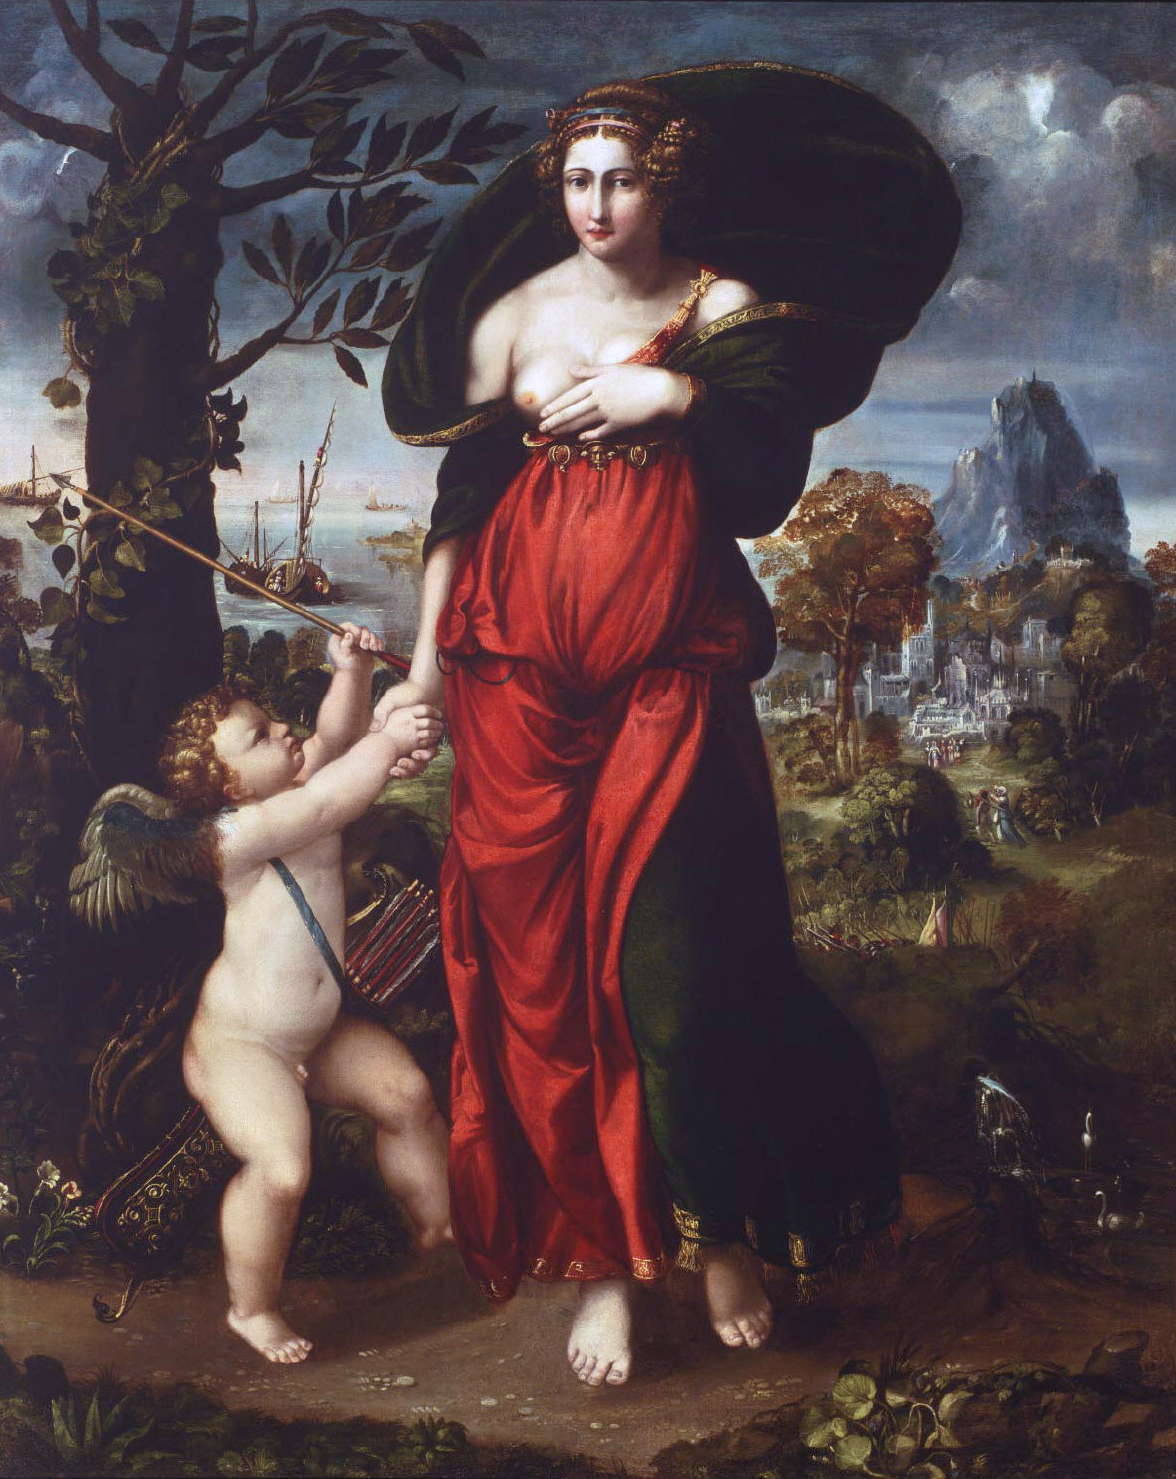 File:'Venus and Cupid', oil on canvas painting by Battista Dossi (